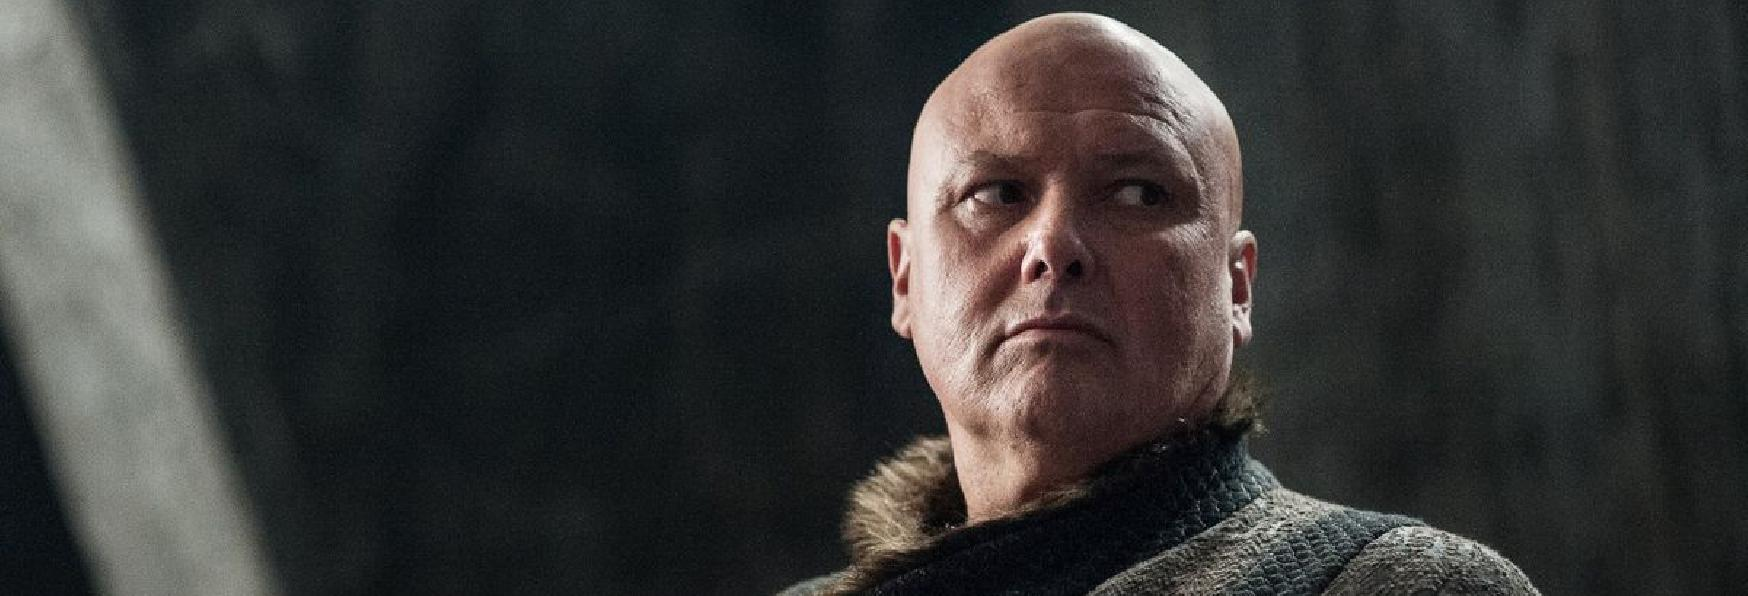 Game of Thrones: l'Opinione di Conleth Hill (Varys) sulle Ultime due Stagioni